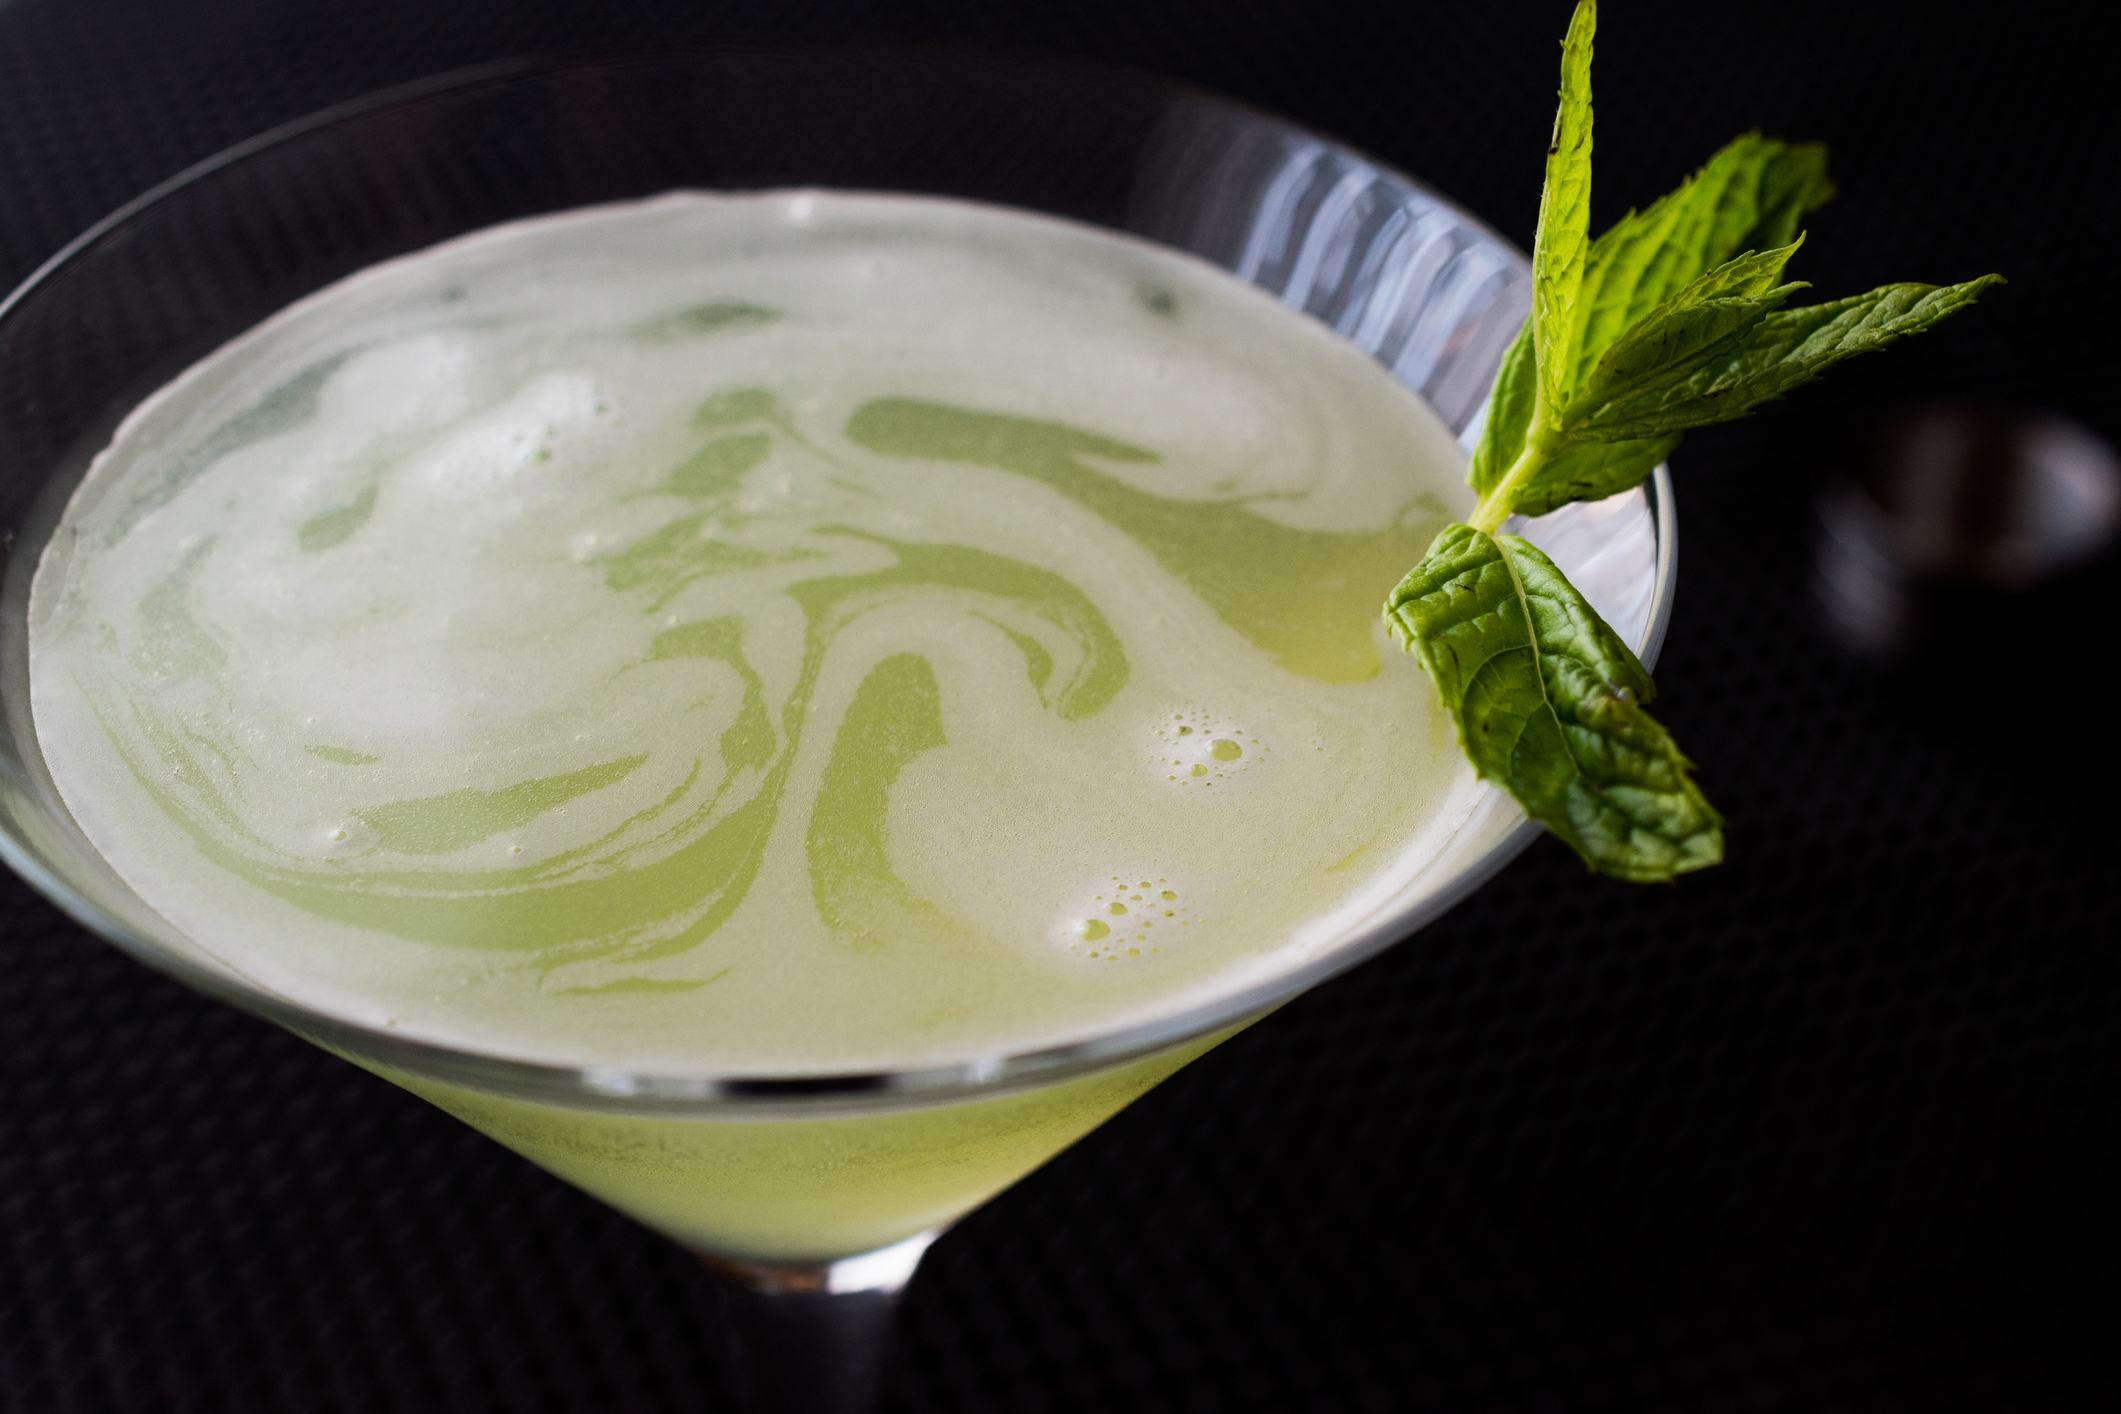 Grasshopper cocktail with mint leaves.